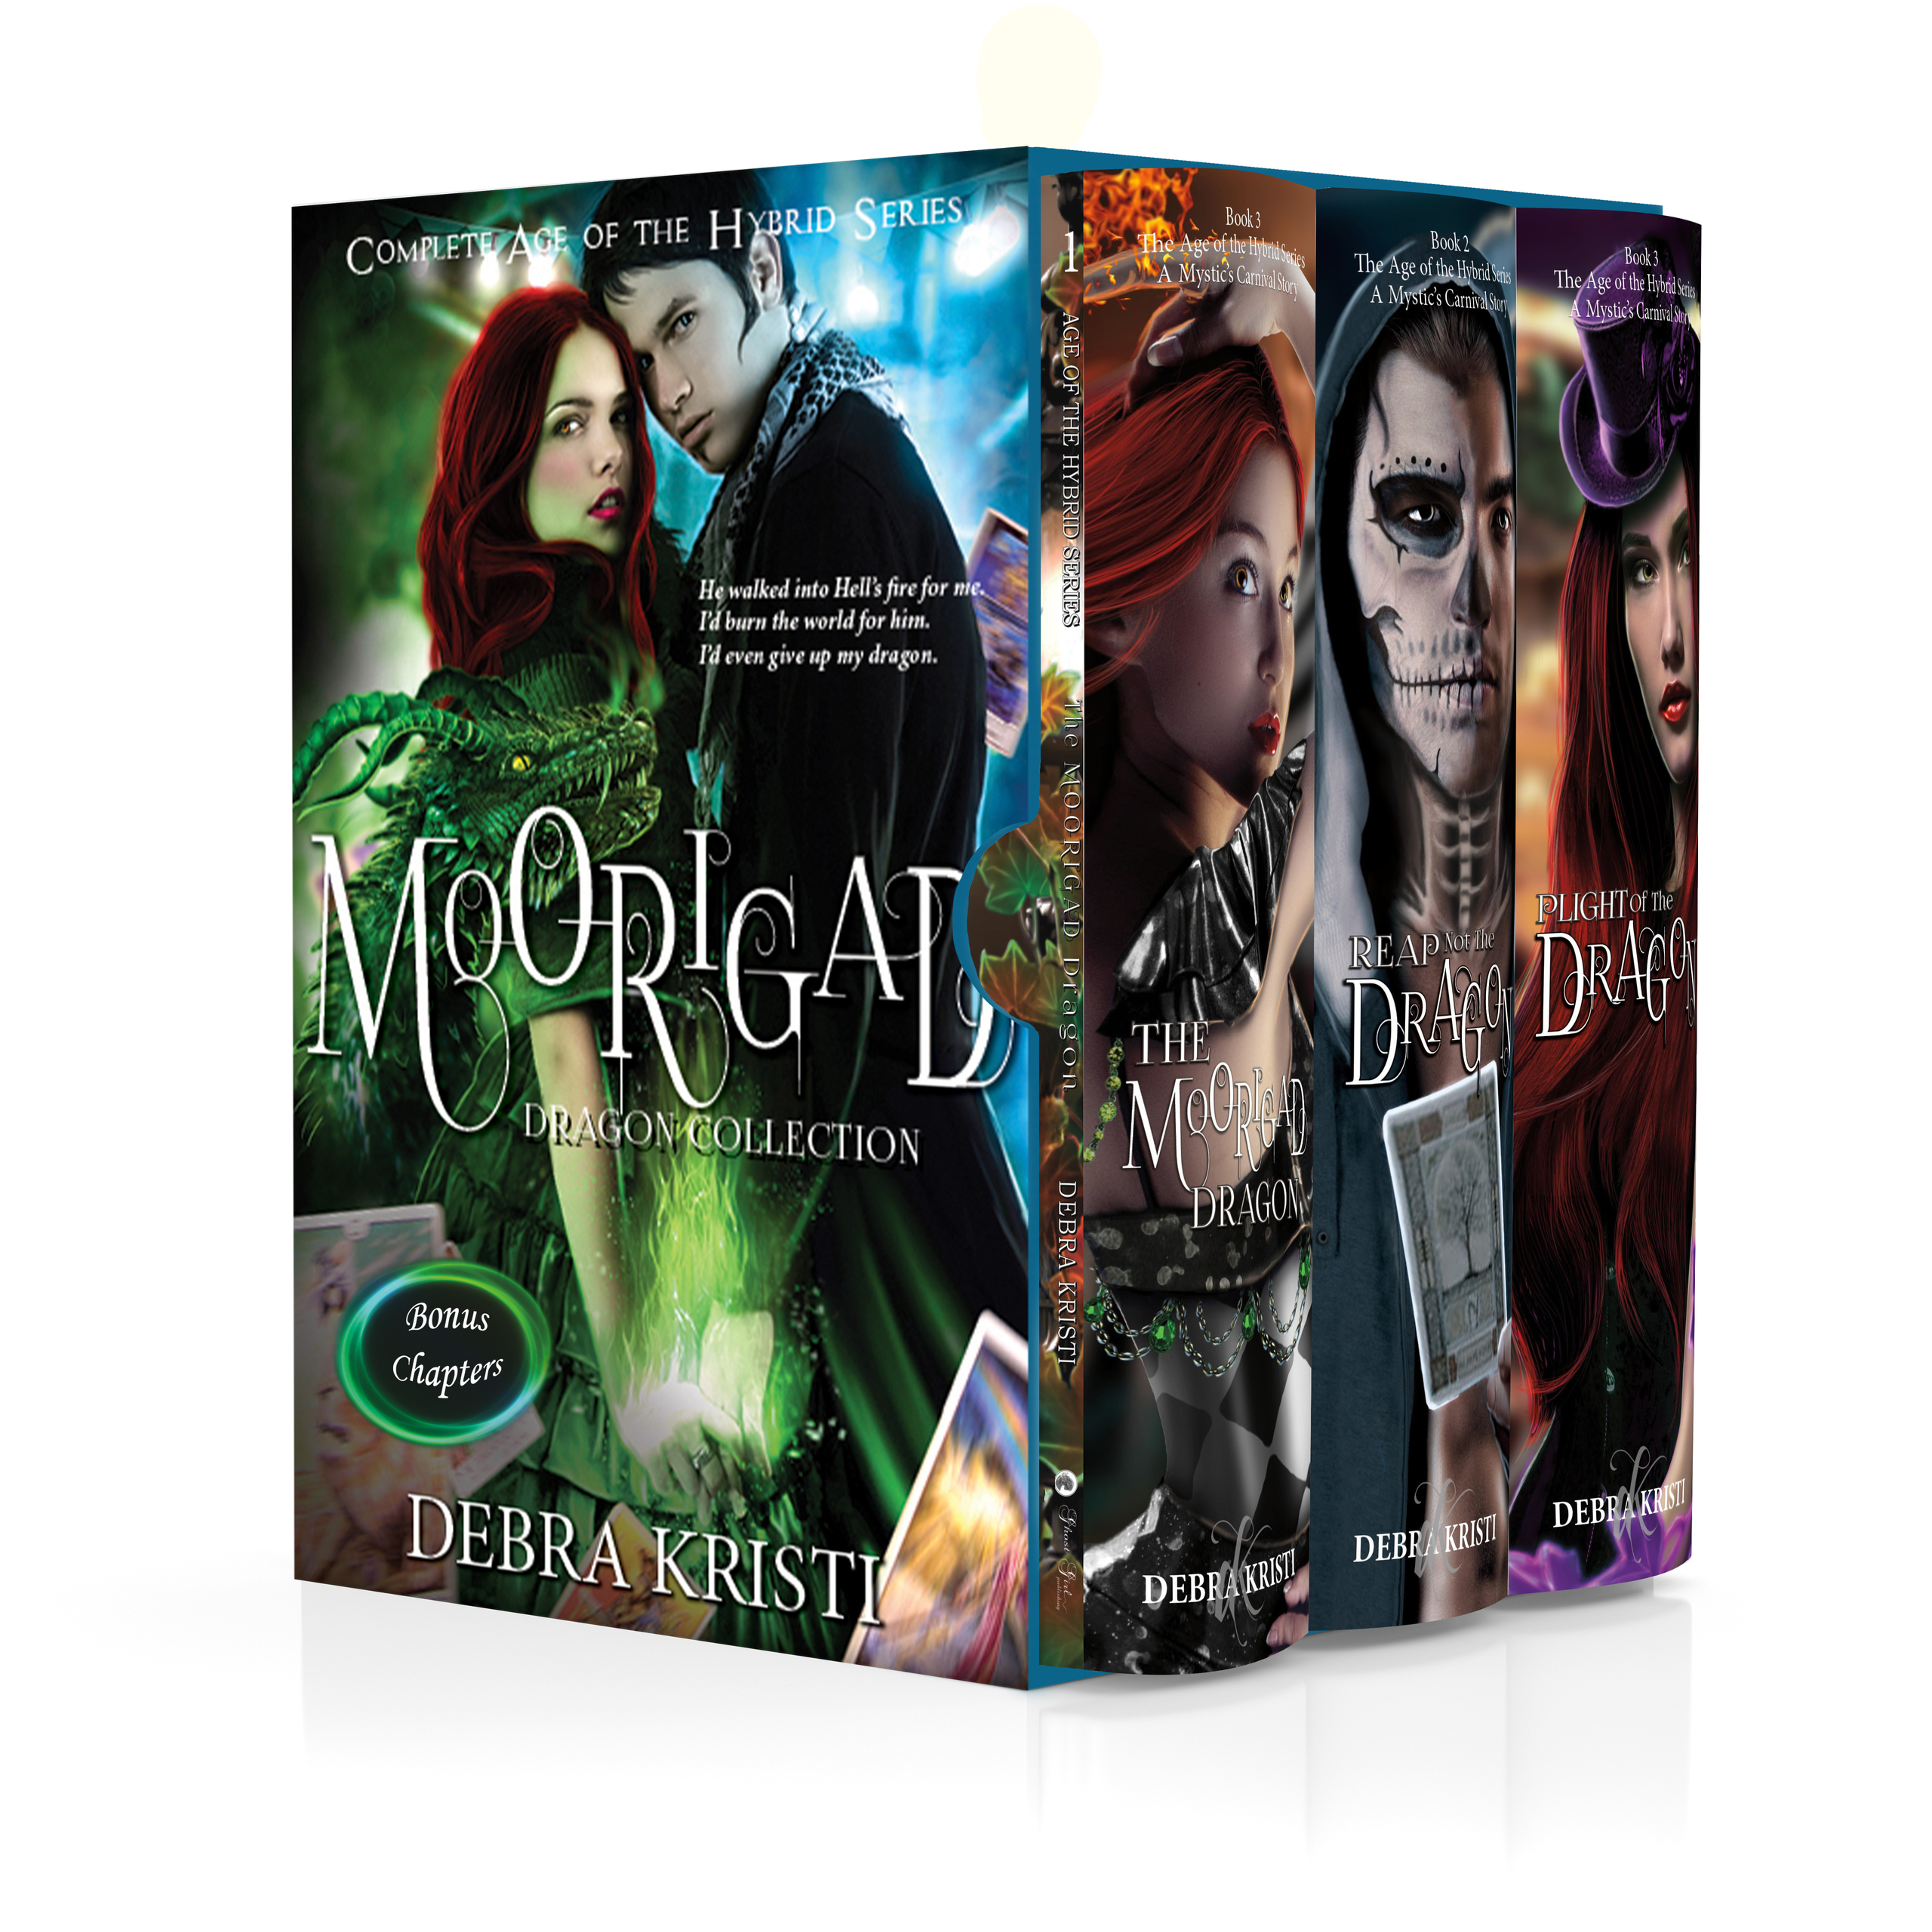 Moorigad: The Complete Age of the Hybrid Series eBook